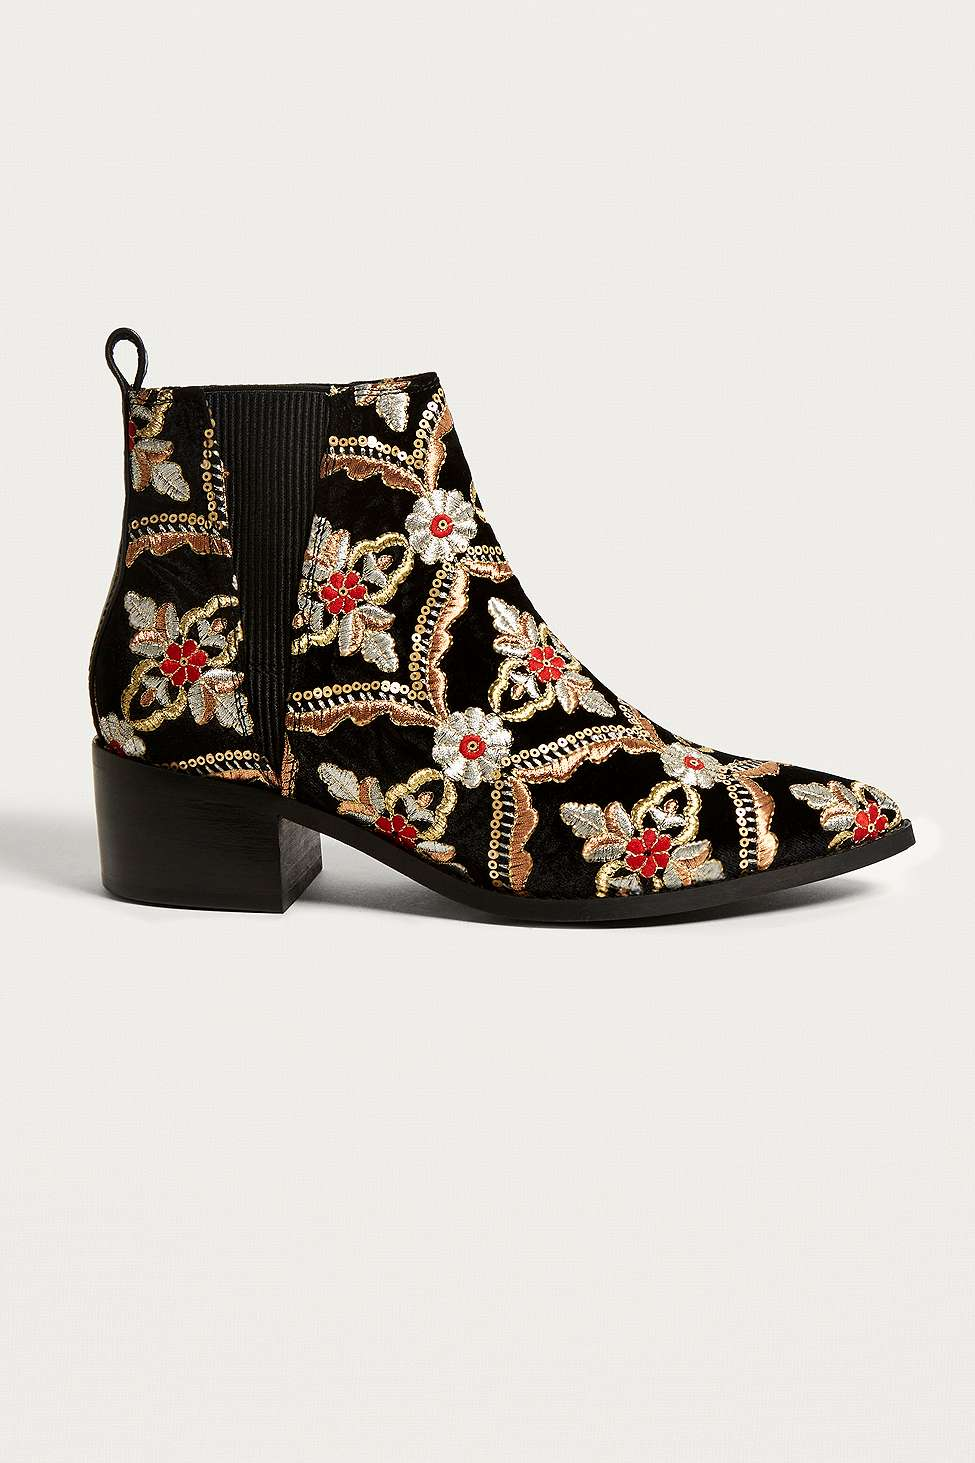 E8 by Miista Ula Embroidered Chelsea Boots, Black Multi